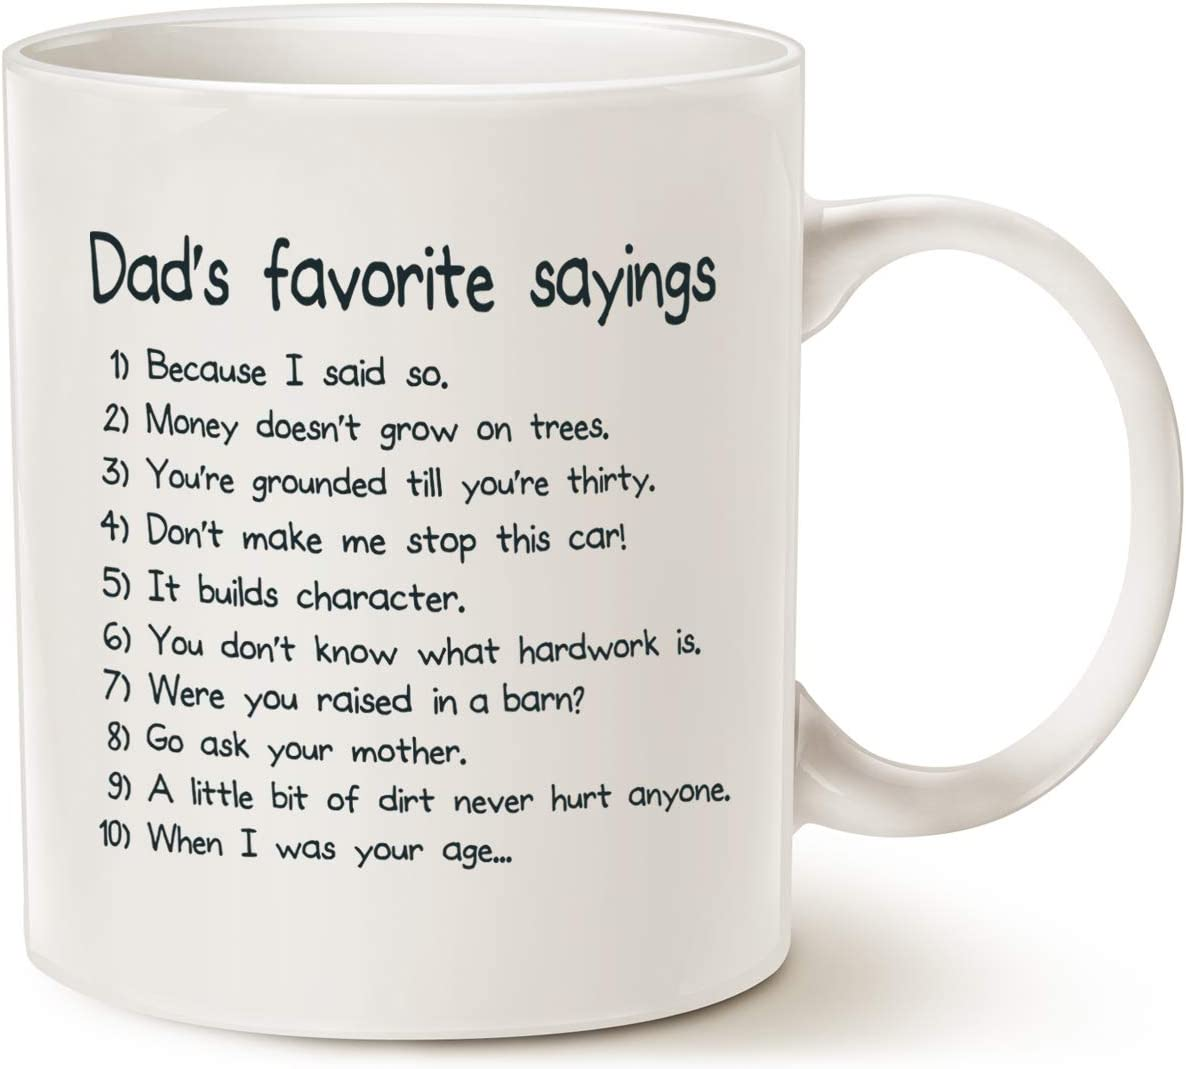 Amazon Com Mauag Fathers Day Gifts Funny Dads Favorite Sayings Coffee Mug Funny Dadisms Written In A Top Ten List Best Birthday Gifts For Dad Father Cup White 11 Oz Kitchen Dining